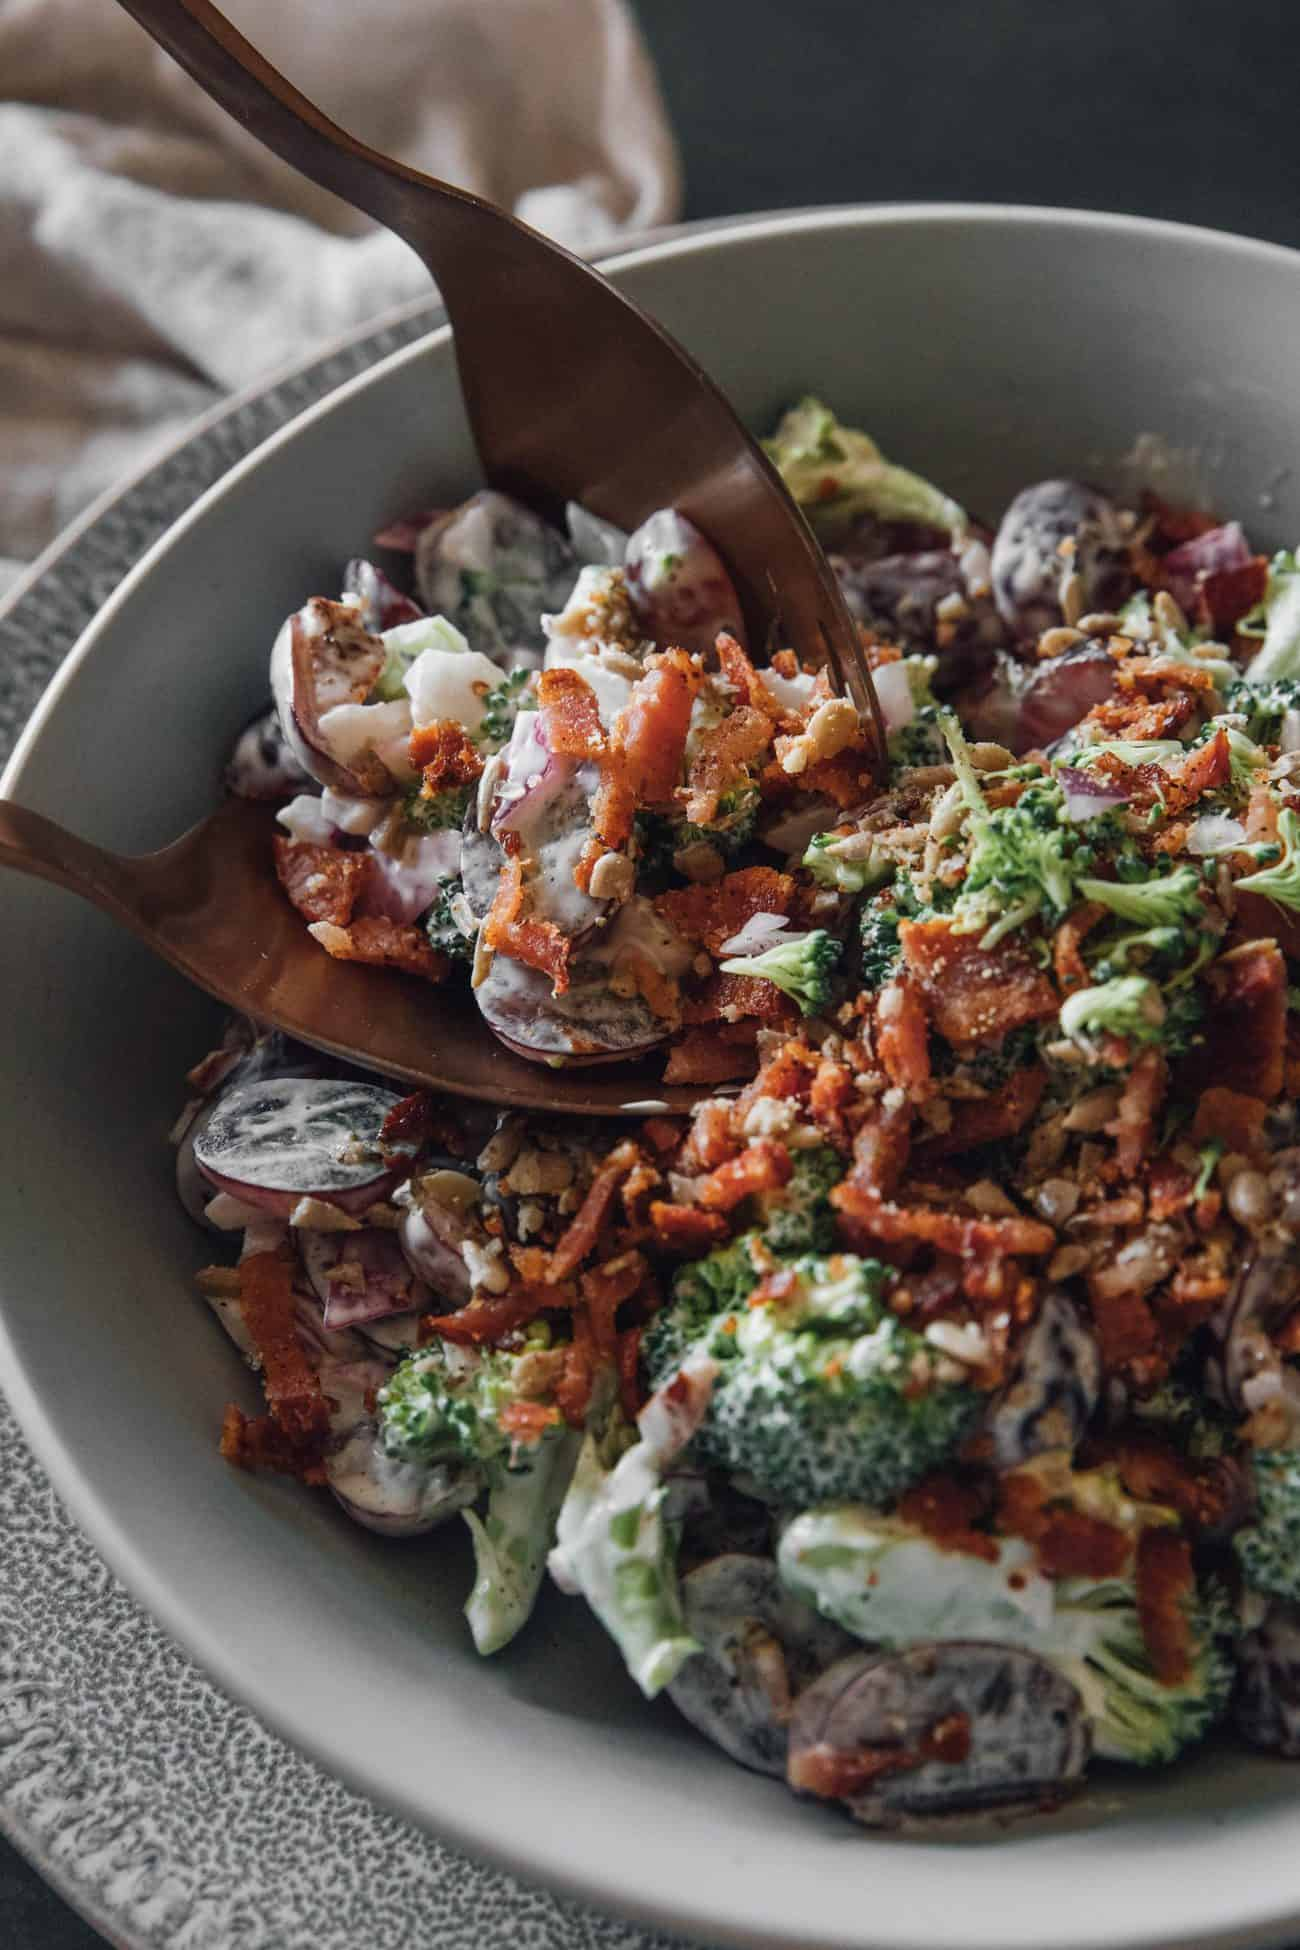 Broccoli Salad With Red Grapes, Bacon and Sunflower Seeds